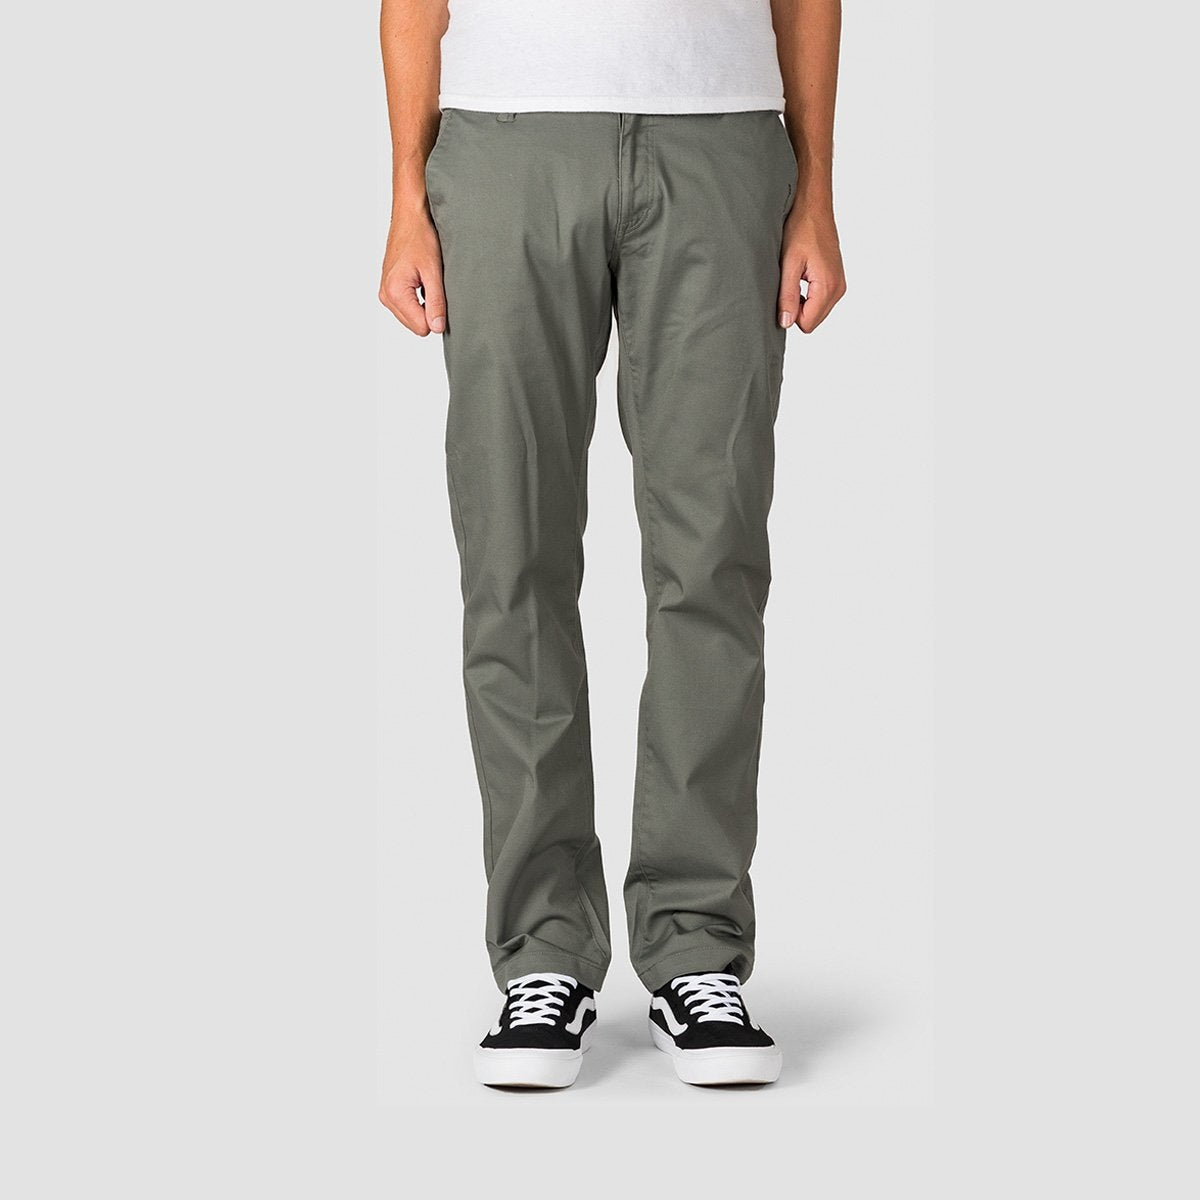 Volcom Frickin Modern Stretch Chino Pants Dusty Green - Clothing